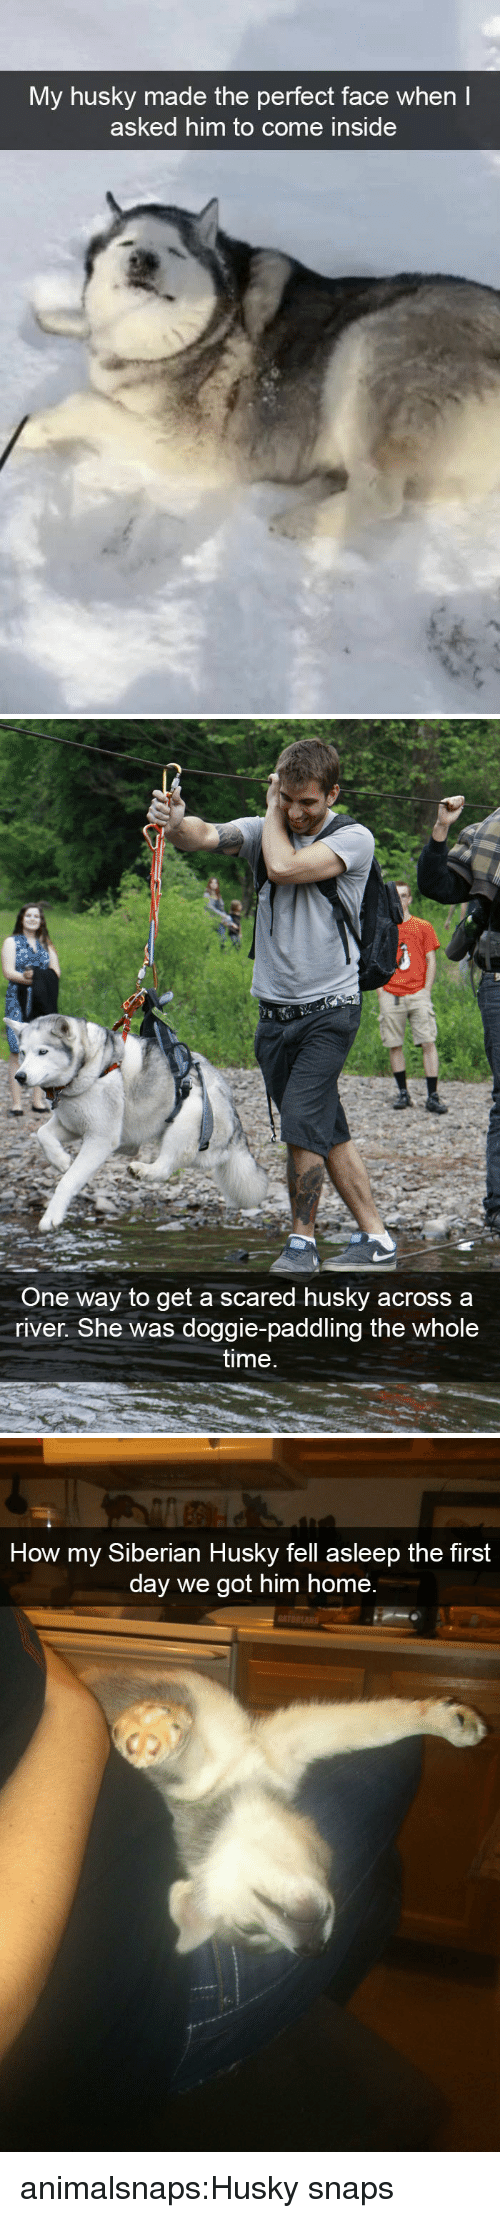 Target, Tumblr, and Blog: My husky made the perfect face when  asked him to come inside   One way to get a scared husky acrossa  river. She was doggie-paddling the whole  time   How my Siberian Husky fell asleep the first  day we got him home.  r. animalsnaps:Husky snaps